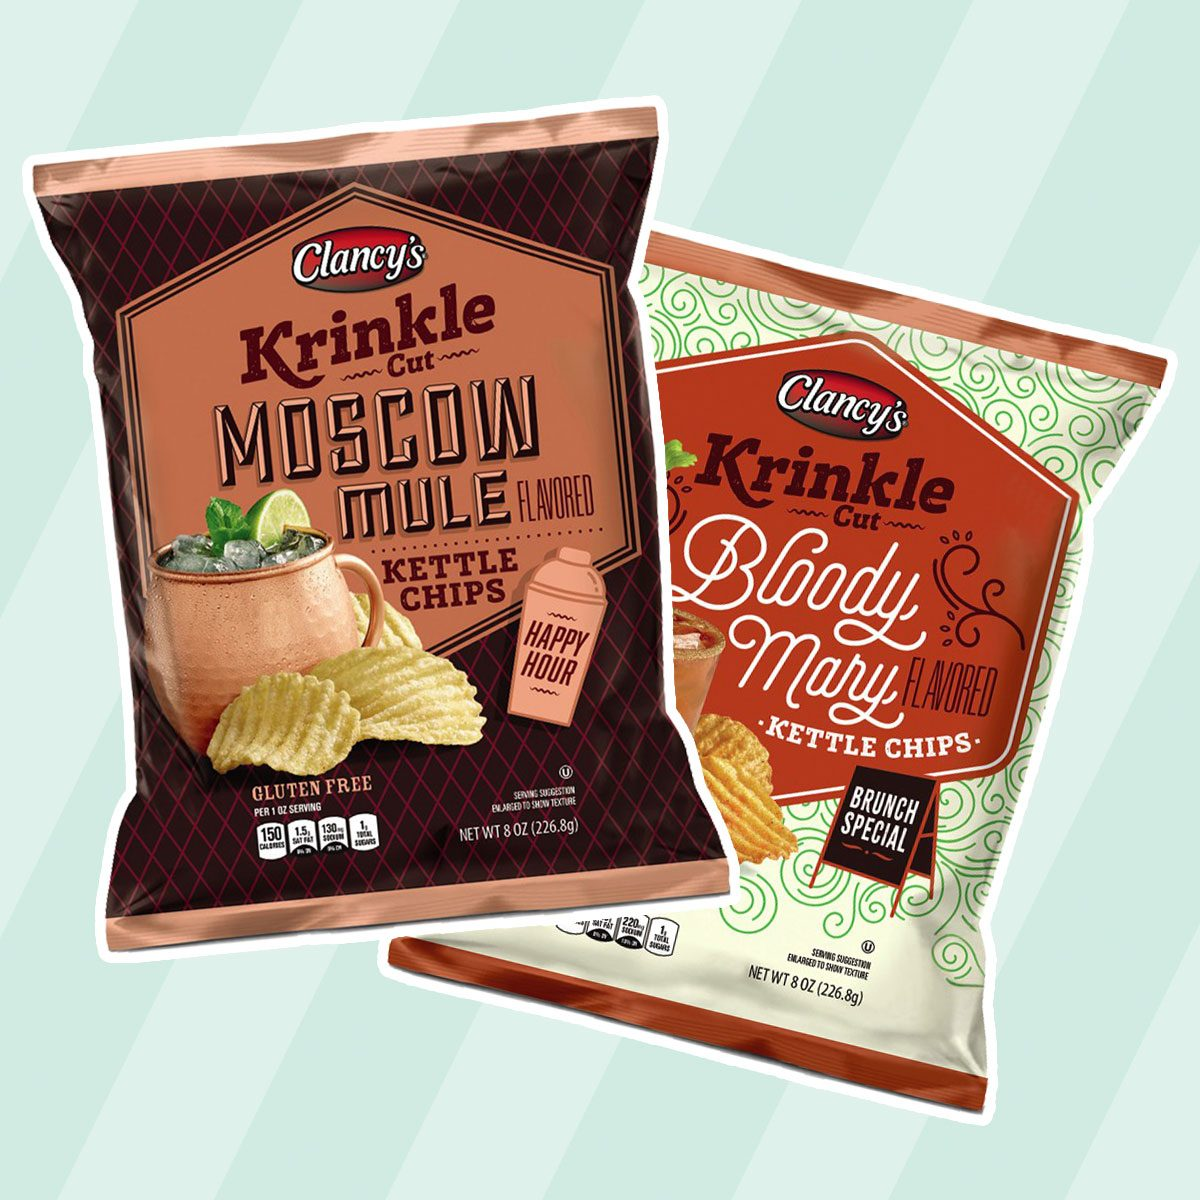 Clancy's Krinkle Cut Kettle Chips (Bloody Mary + Moscow Mule)